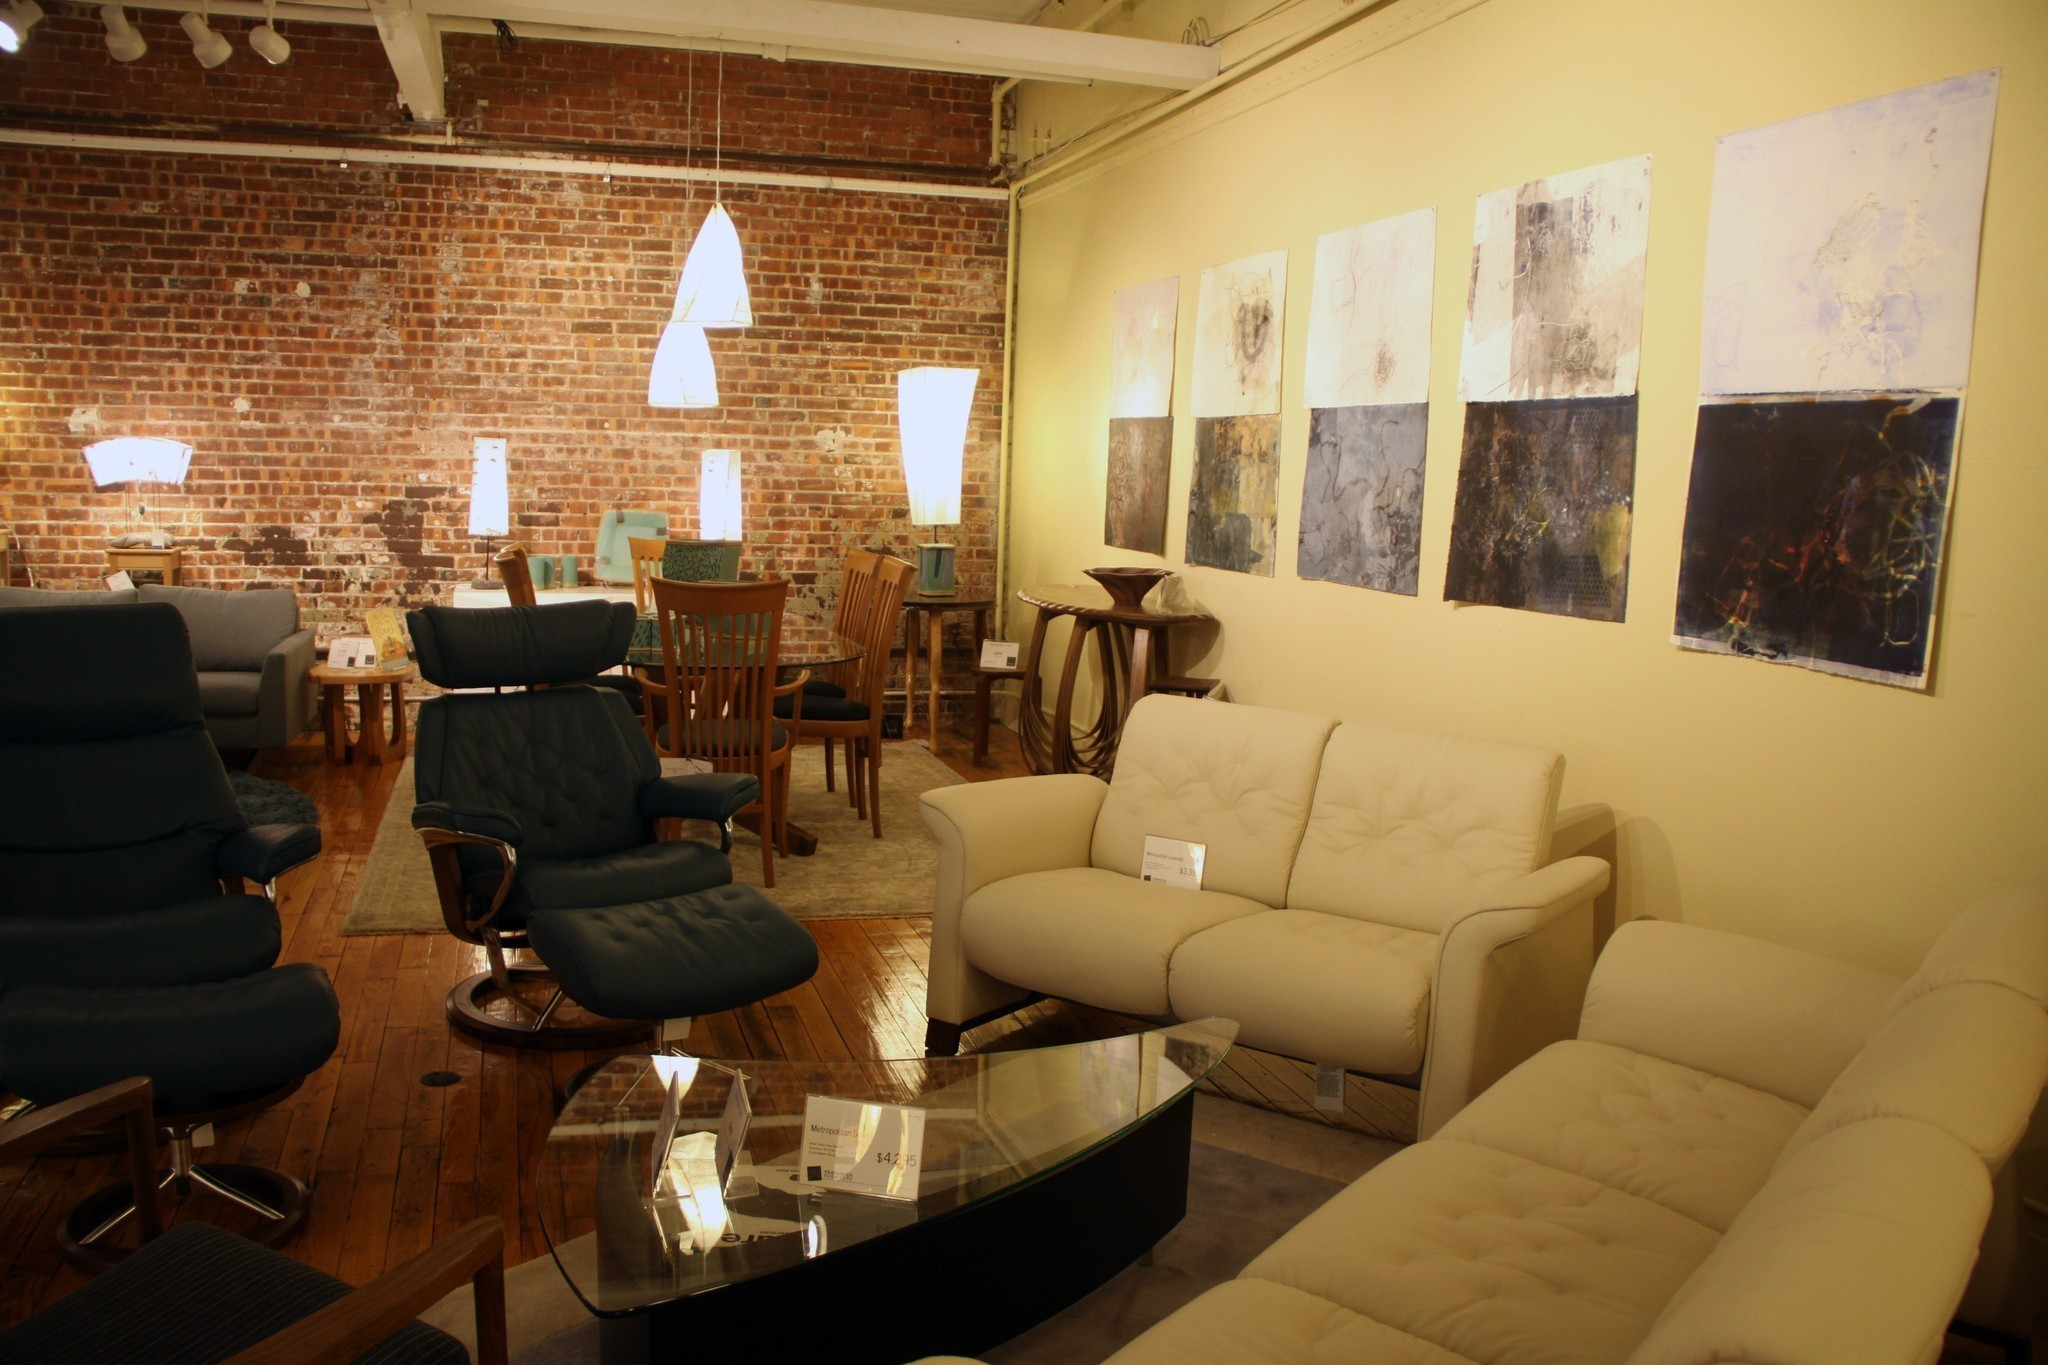 After 35 Years An Alternative Furniture Retailer Spreading Eclectic Culture Hartford Courant